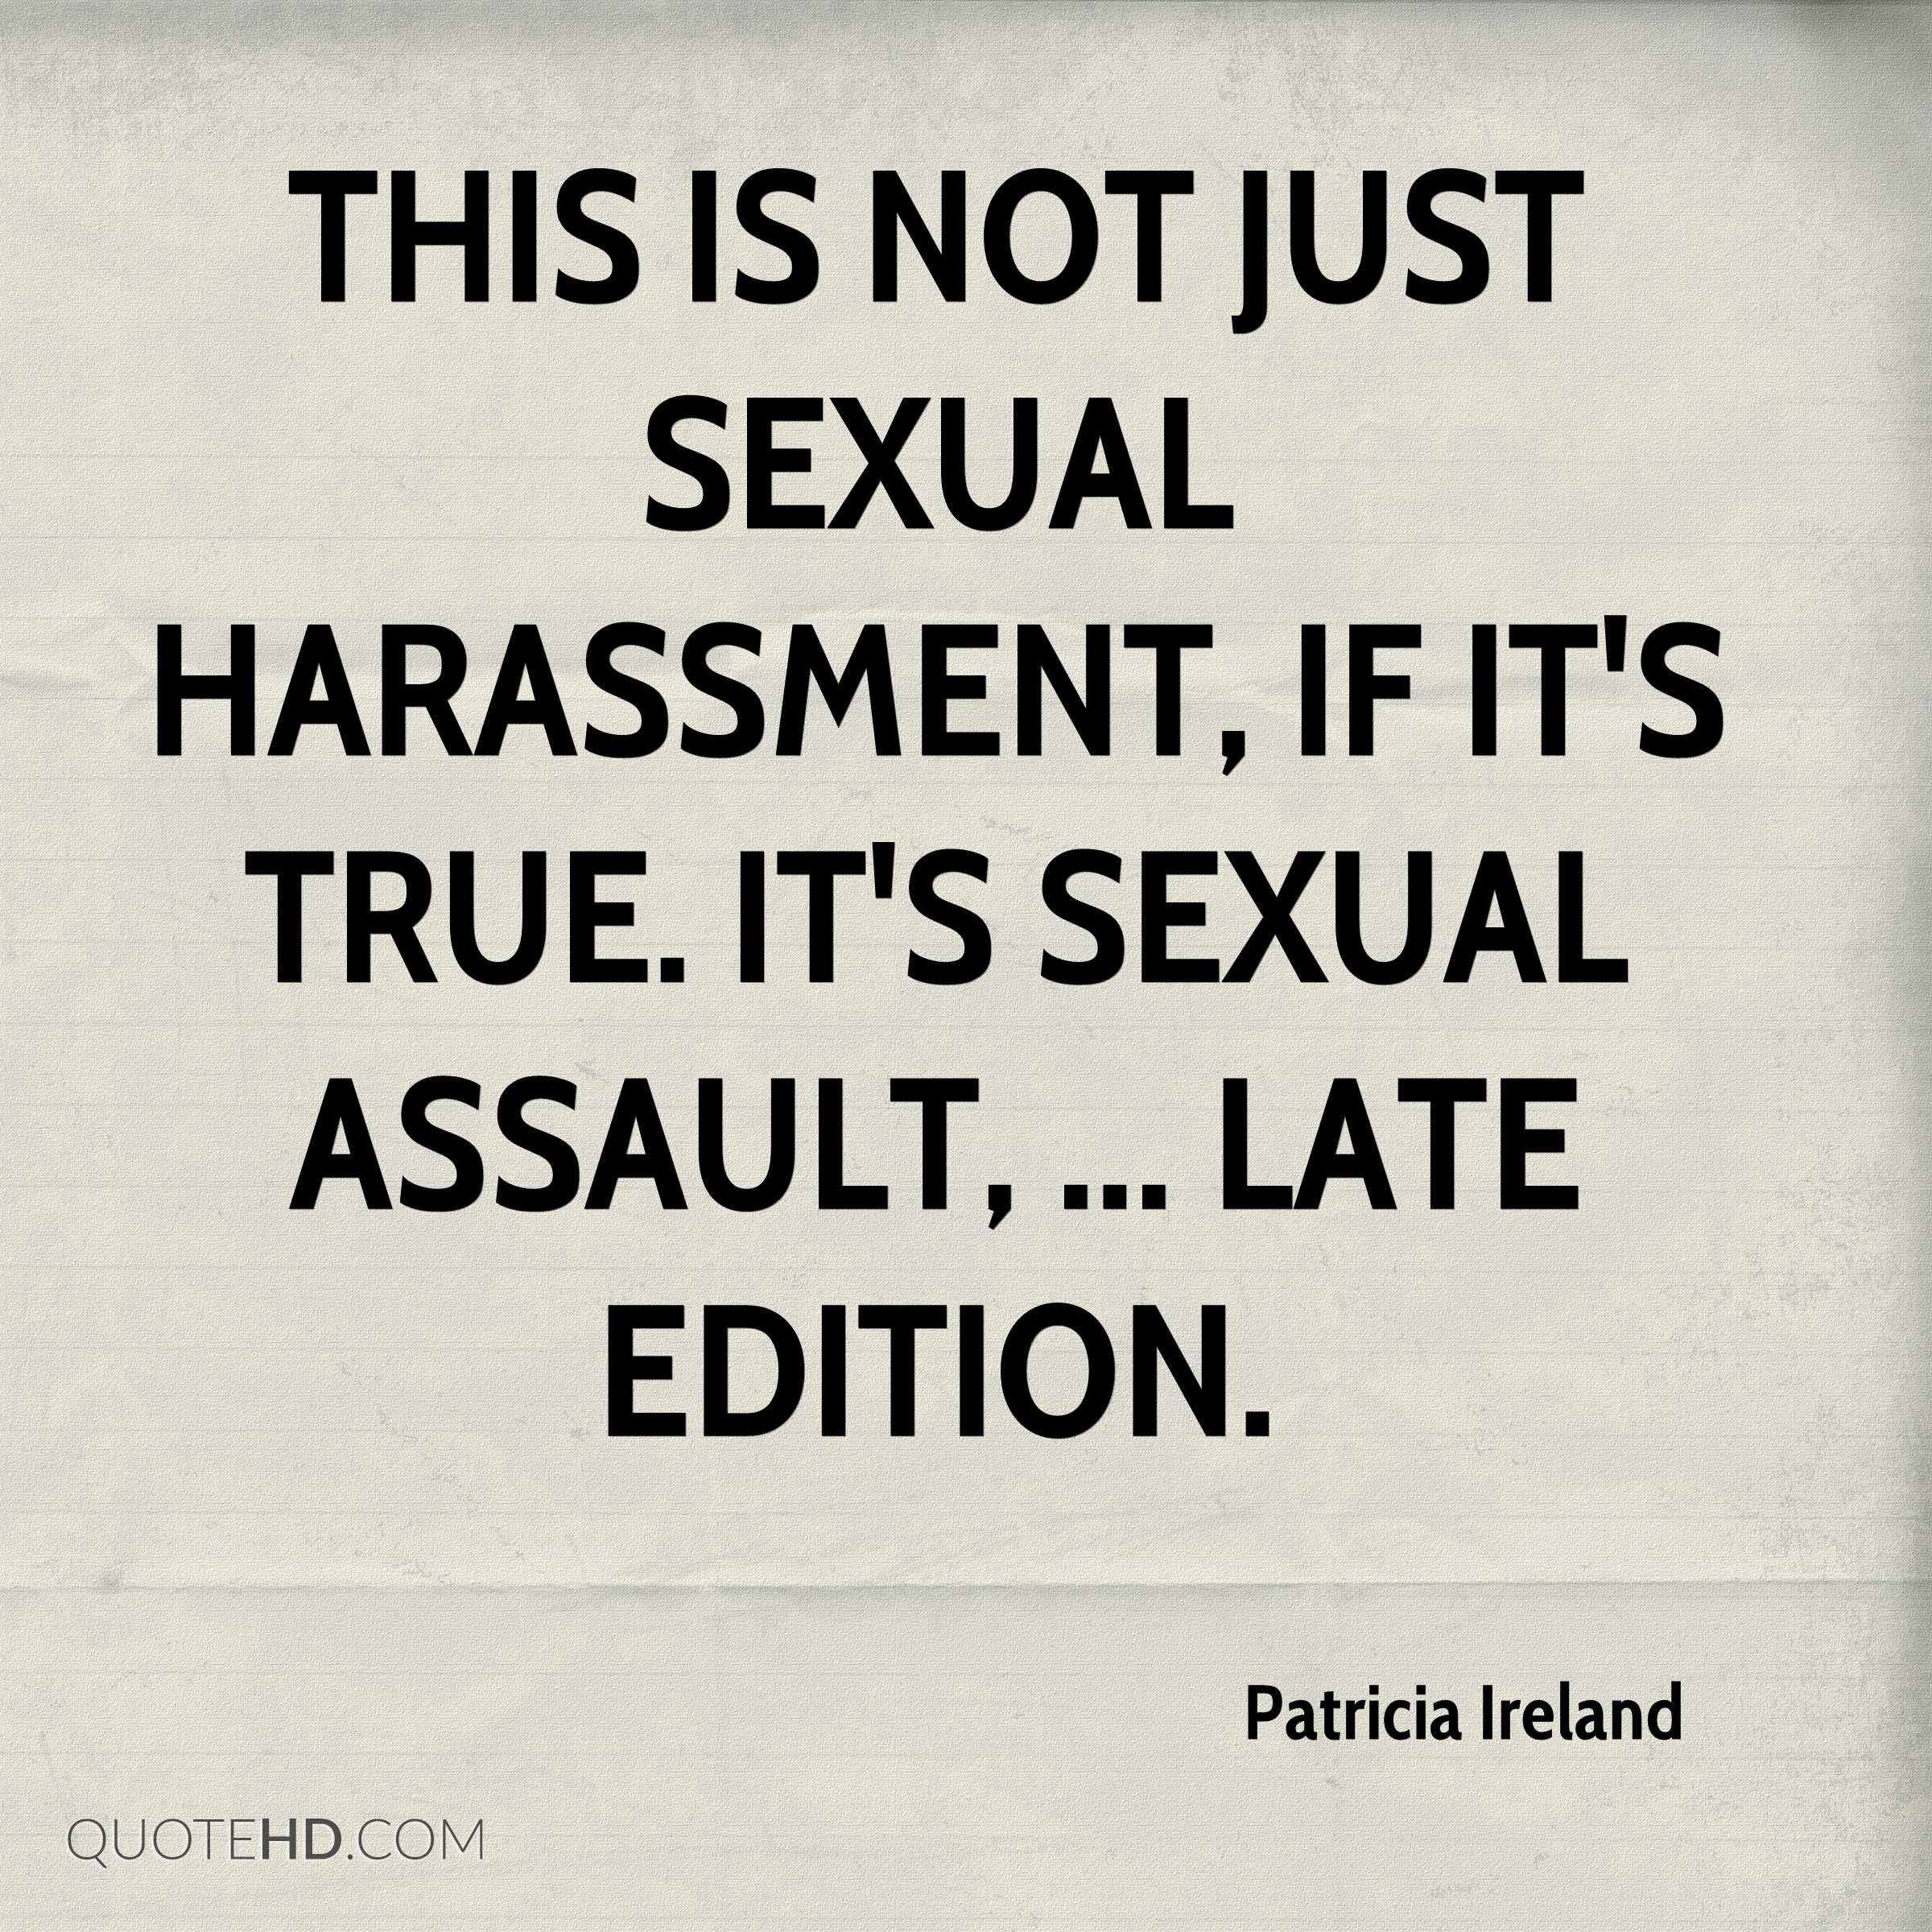 This is not just sexual harassment, if it's true. It's sexual assault, ... Late Edition.